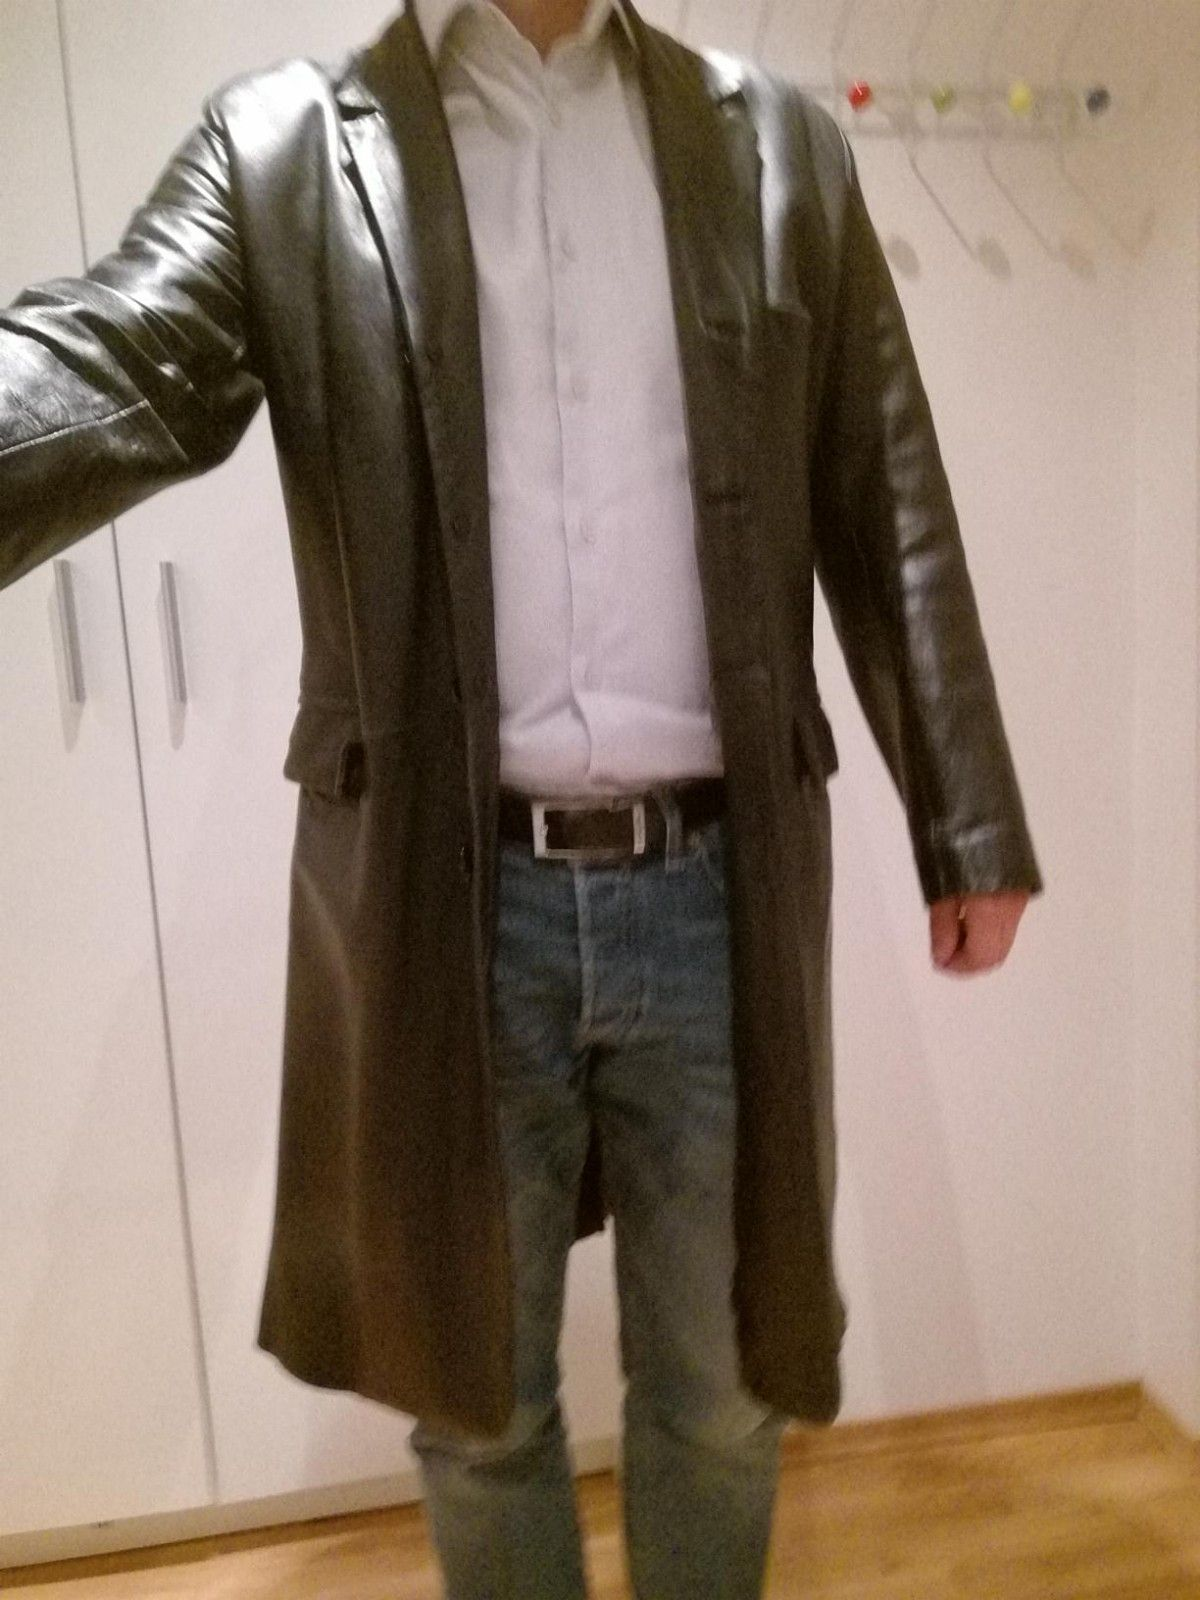 Men's long leather jacket, size S, black - Oslo  - Men's long leather jacket, size S, black. I'm medium size myself and the jacket fits, so I'd consider it large size S. - Oslo